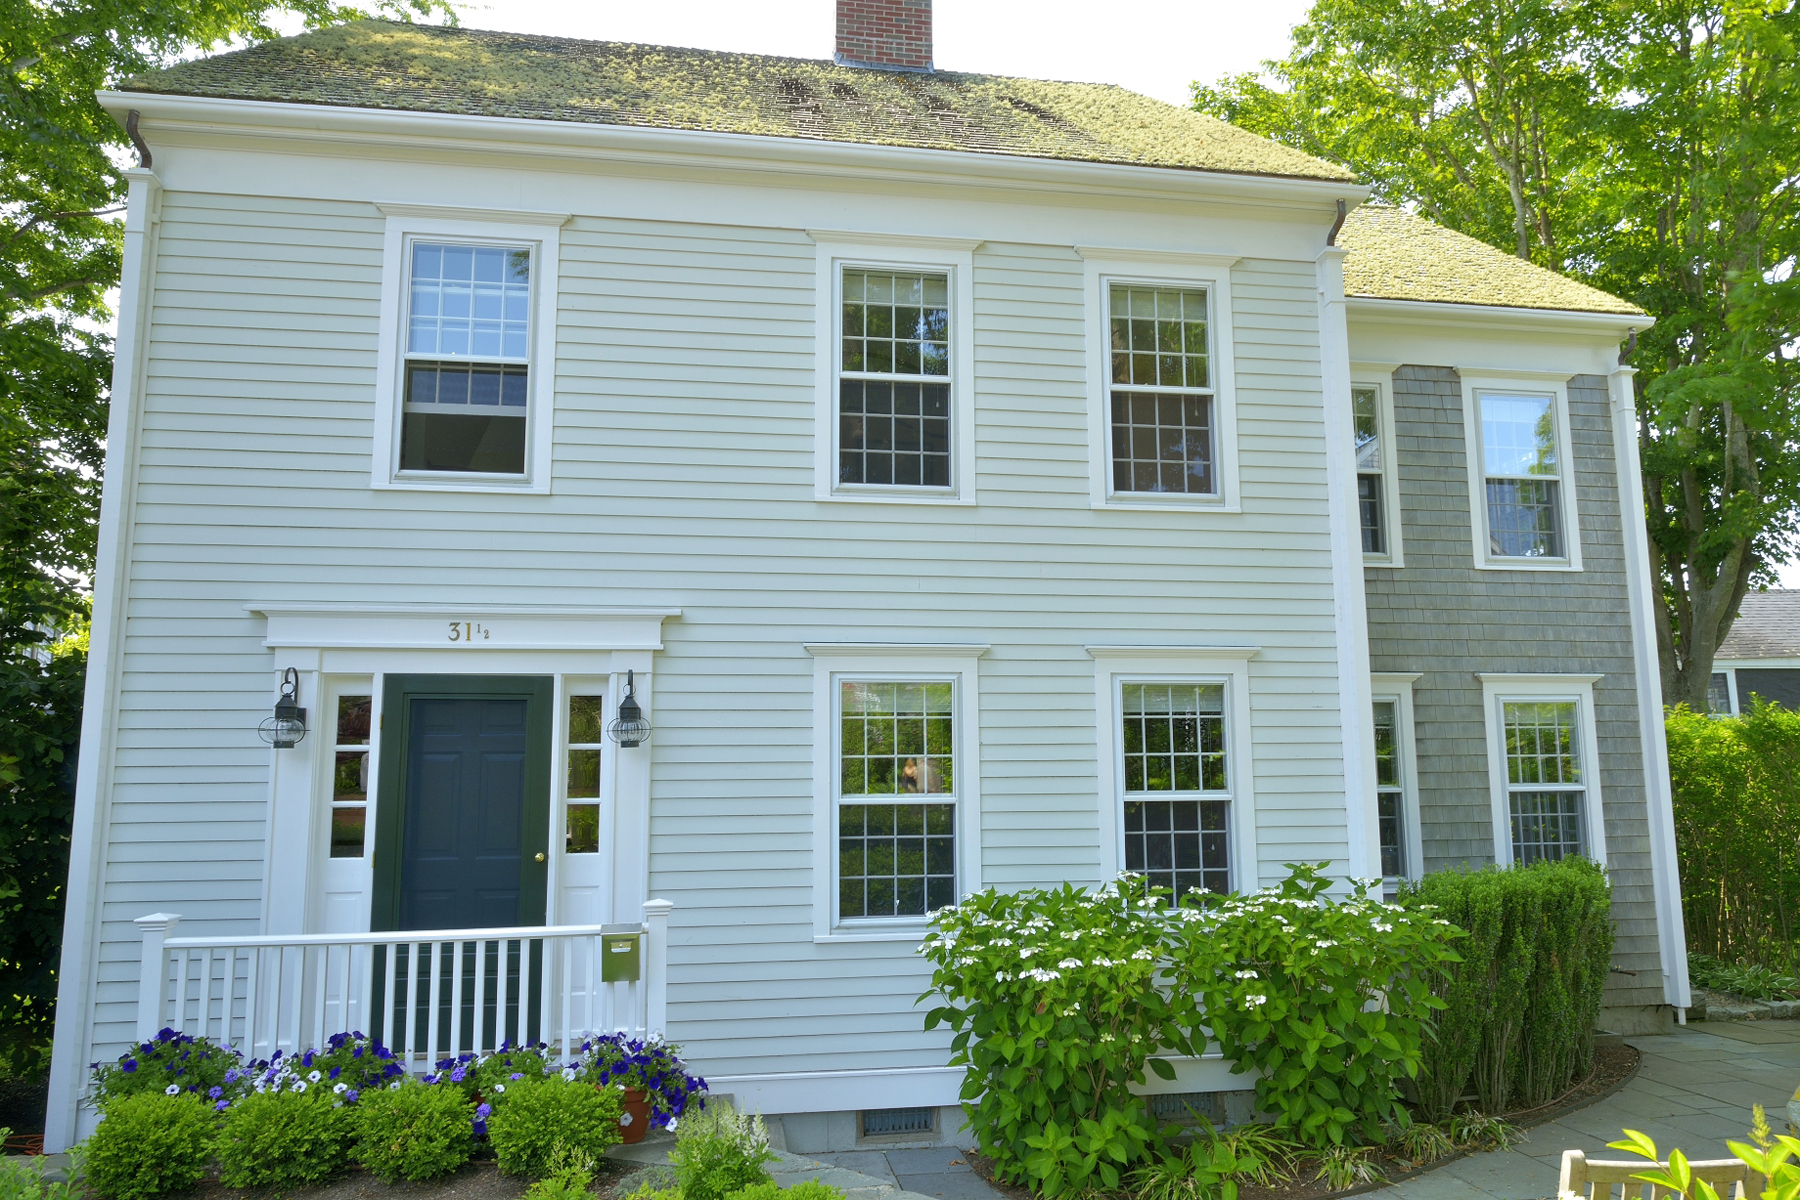 Casa Unifamiliar por un Venta en In Town Gem 31.5 Hussey Street Nantucket, Massachusetts 02554 Estados Unidos